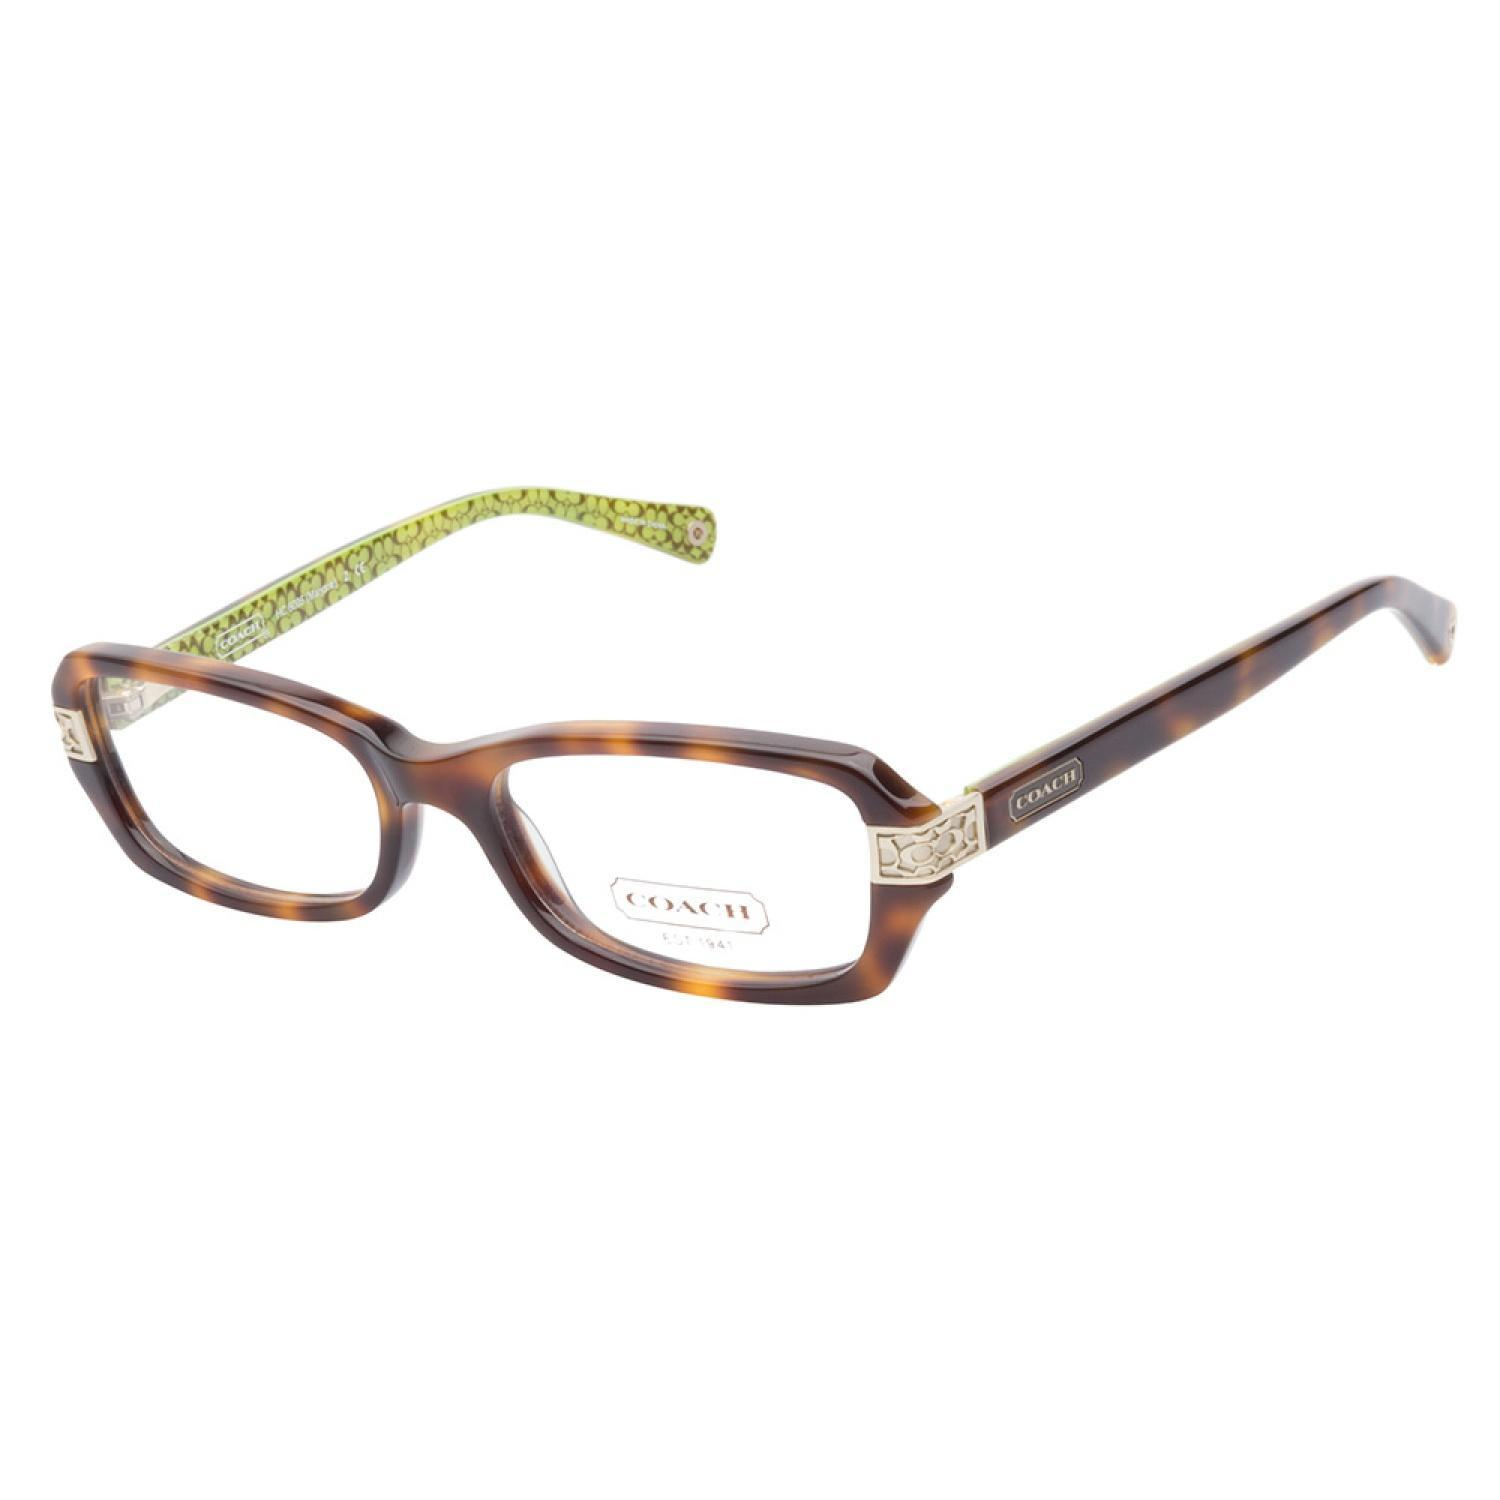 2d949d7ea6b Shop Coach 6005A Marjorie 5031 Tortoise Prescription Eyeglasses - Free  Shipping Today - Overstock.com - 9350130